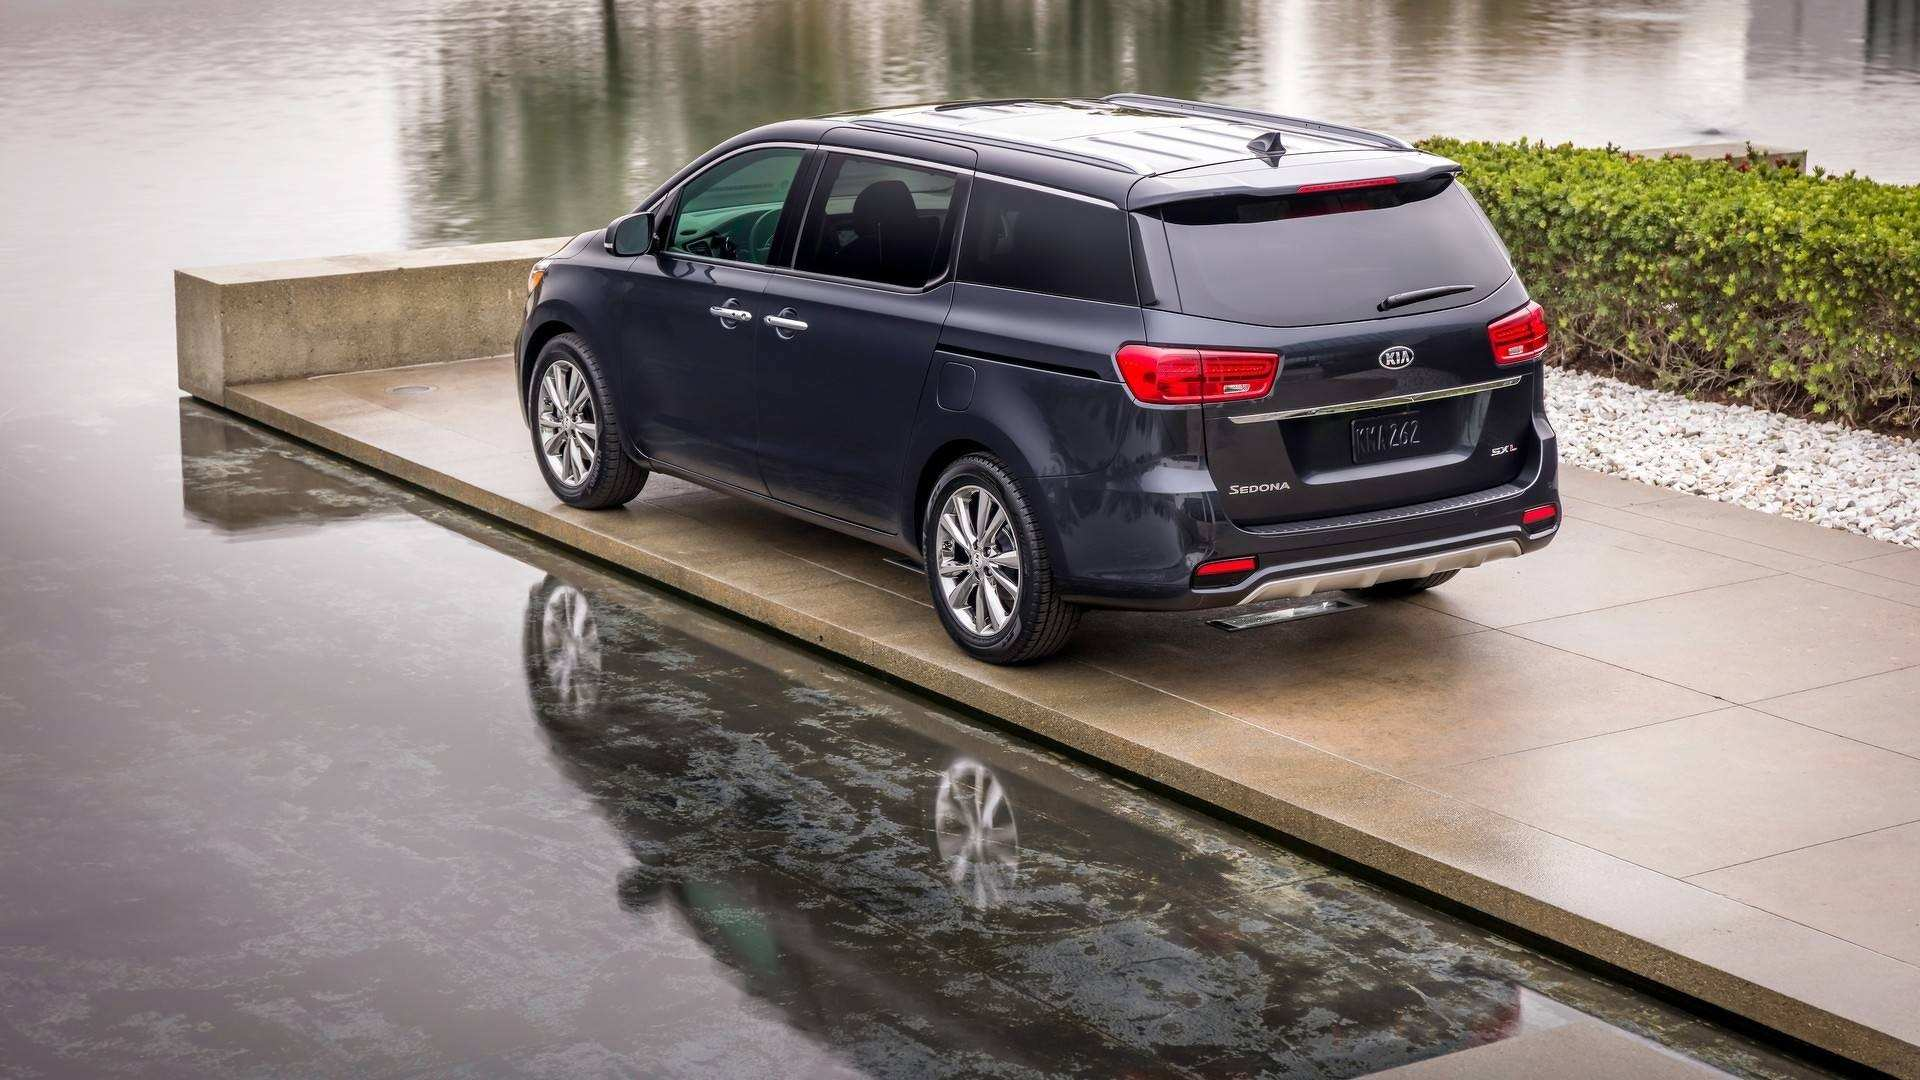 78 The New Minivan Kia 2019 Concept New Concept by New Minivan Kia 2019 Concept